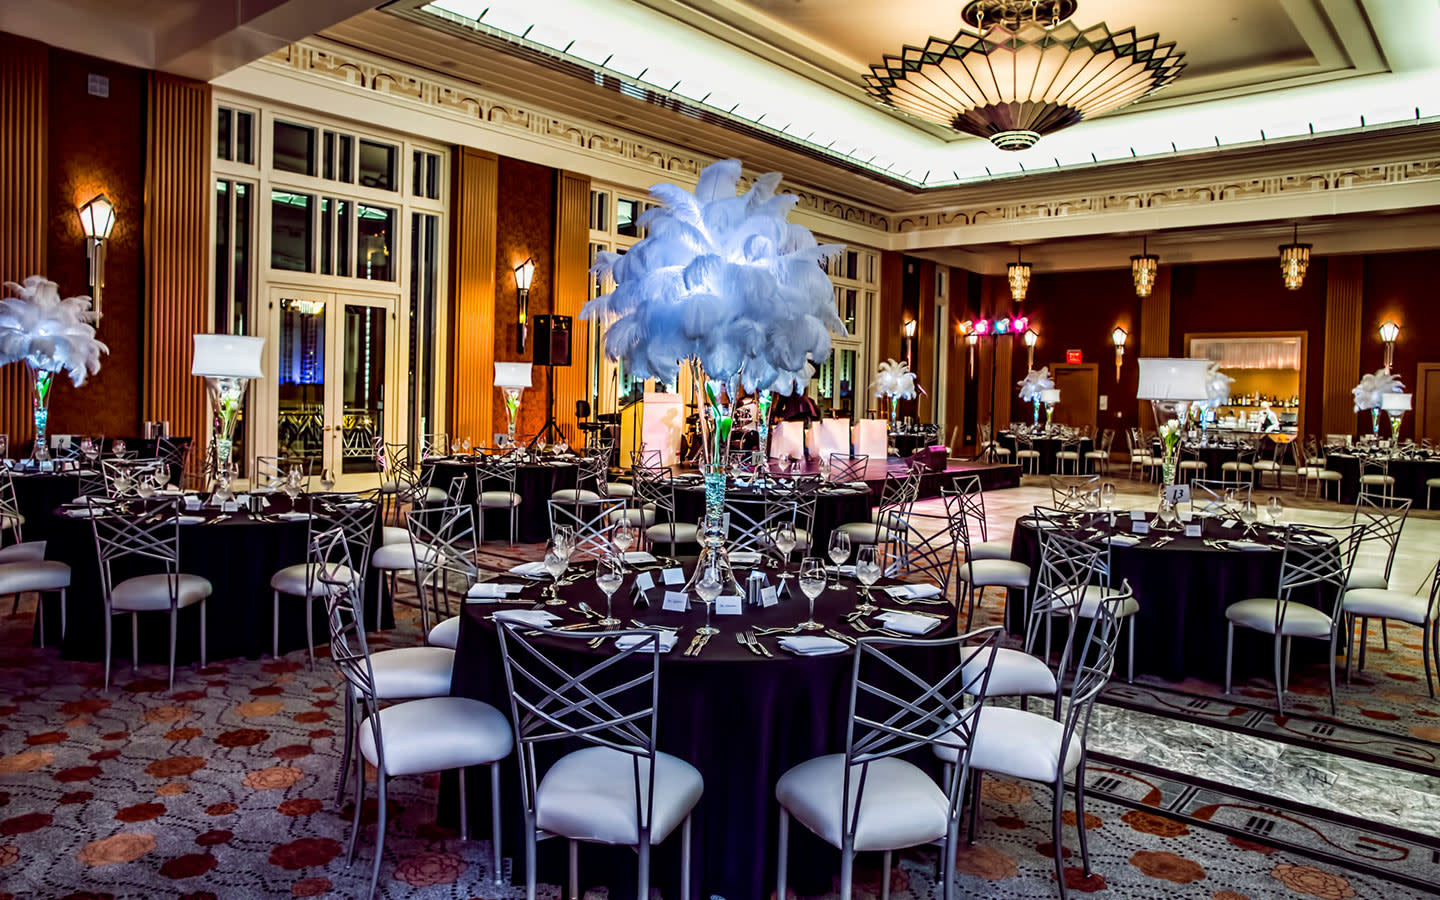 Pilar Pava Events worked with Flora Couture at The Smith Center